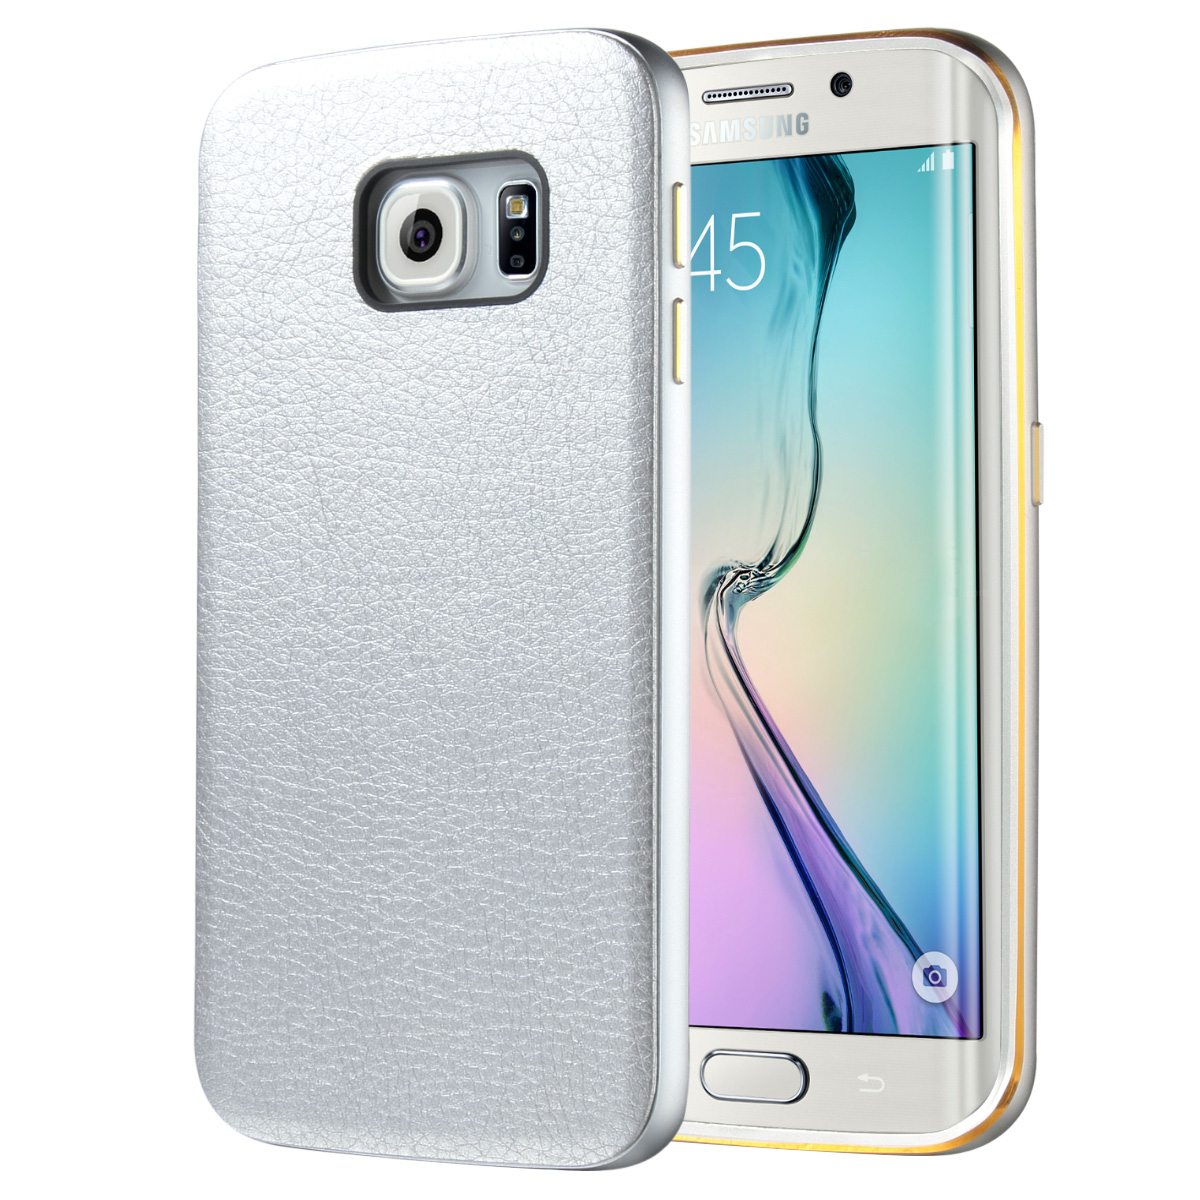 "ULAK Galaxy S6 Edge Case, Hybrid Case with Metallic Bumper and Synthetic Leather Back for Samsung Galaxy S6 Edge (5.1"" inch) 2015 Release"